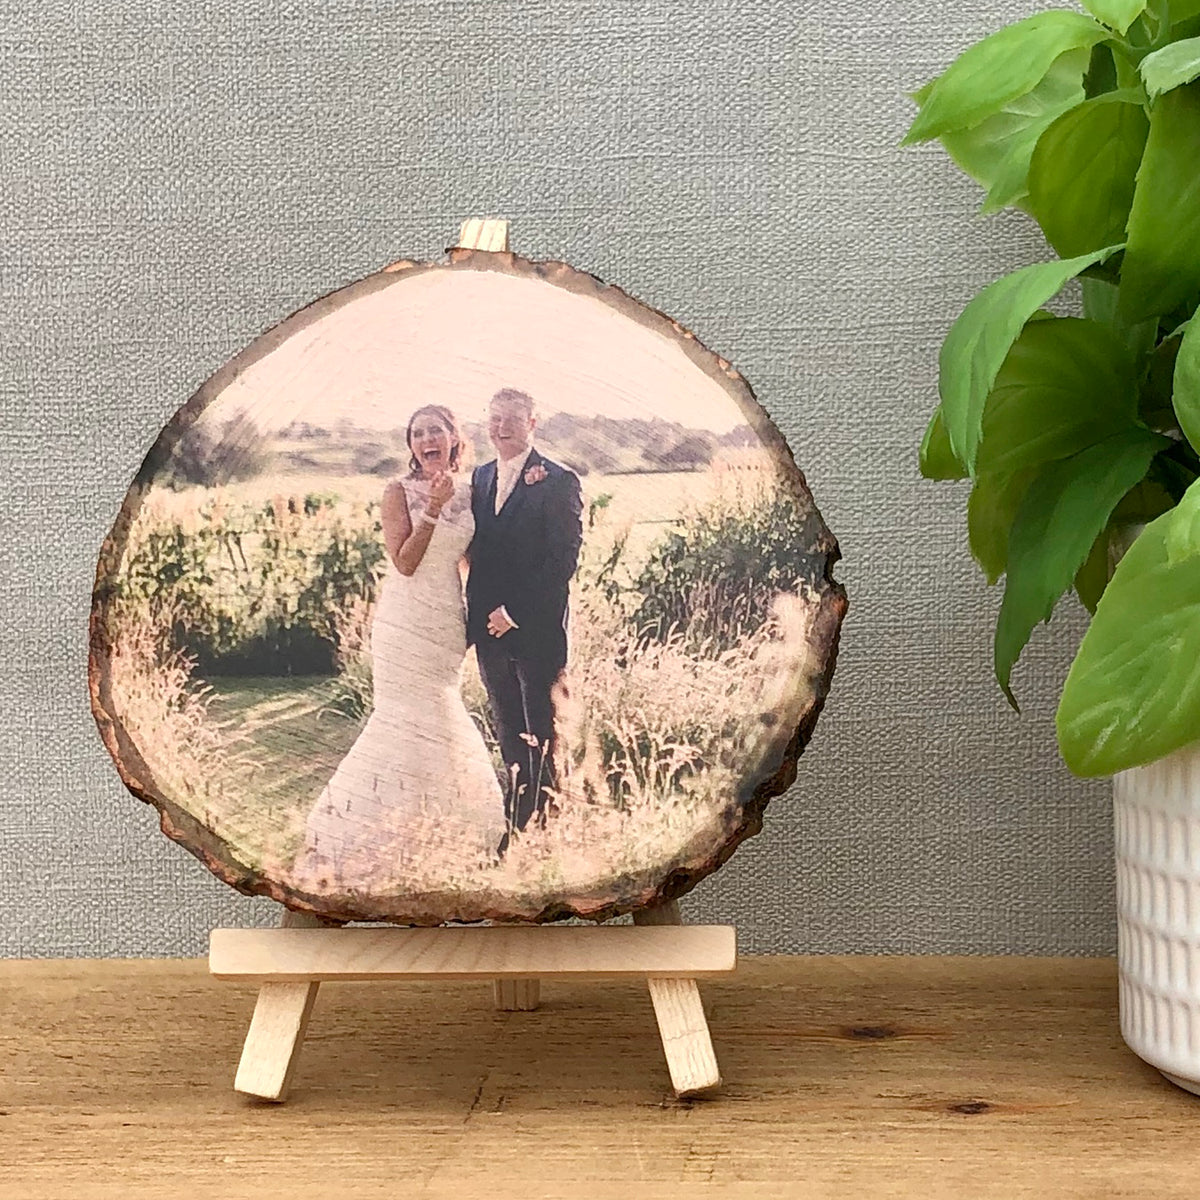 A small wood slice photo plaque showing a bride and groom on their wedding day